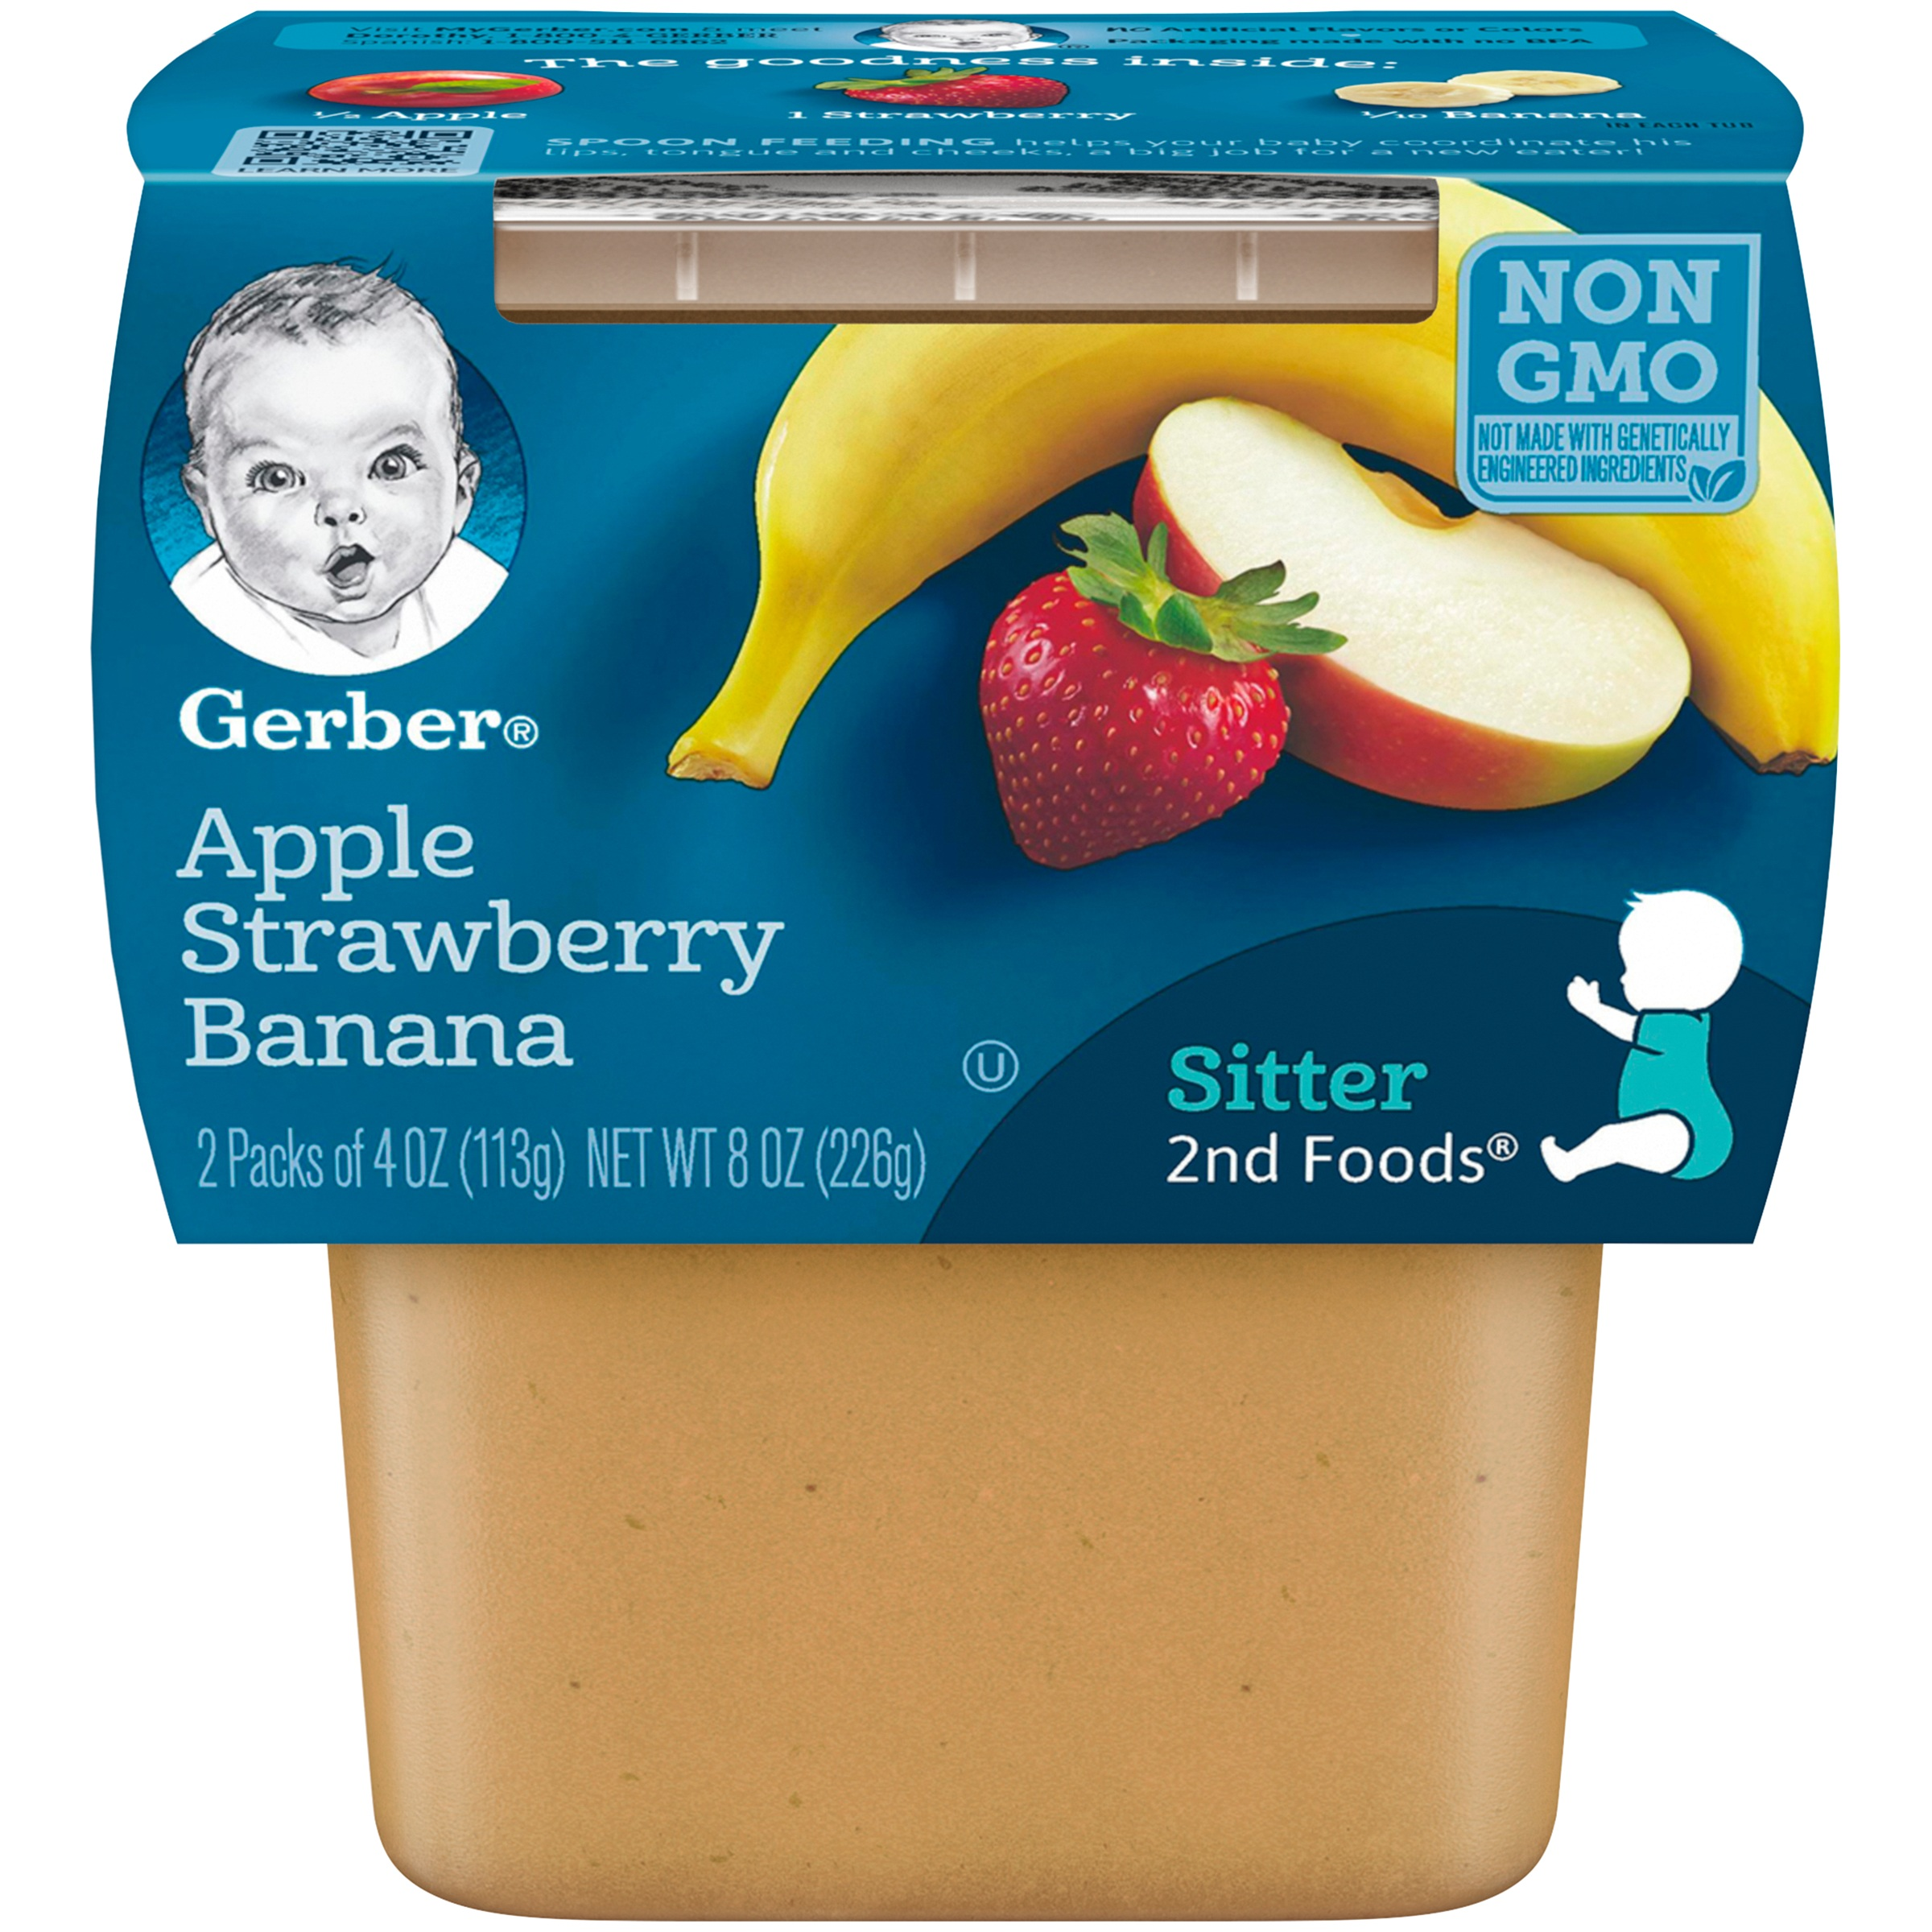 (8 Pack) Gerber 2nd Foods Apple Strawberry Banana Baby Food, 4 oz. Tubs, 2 Count